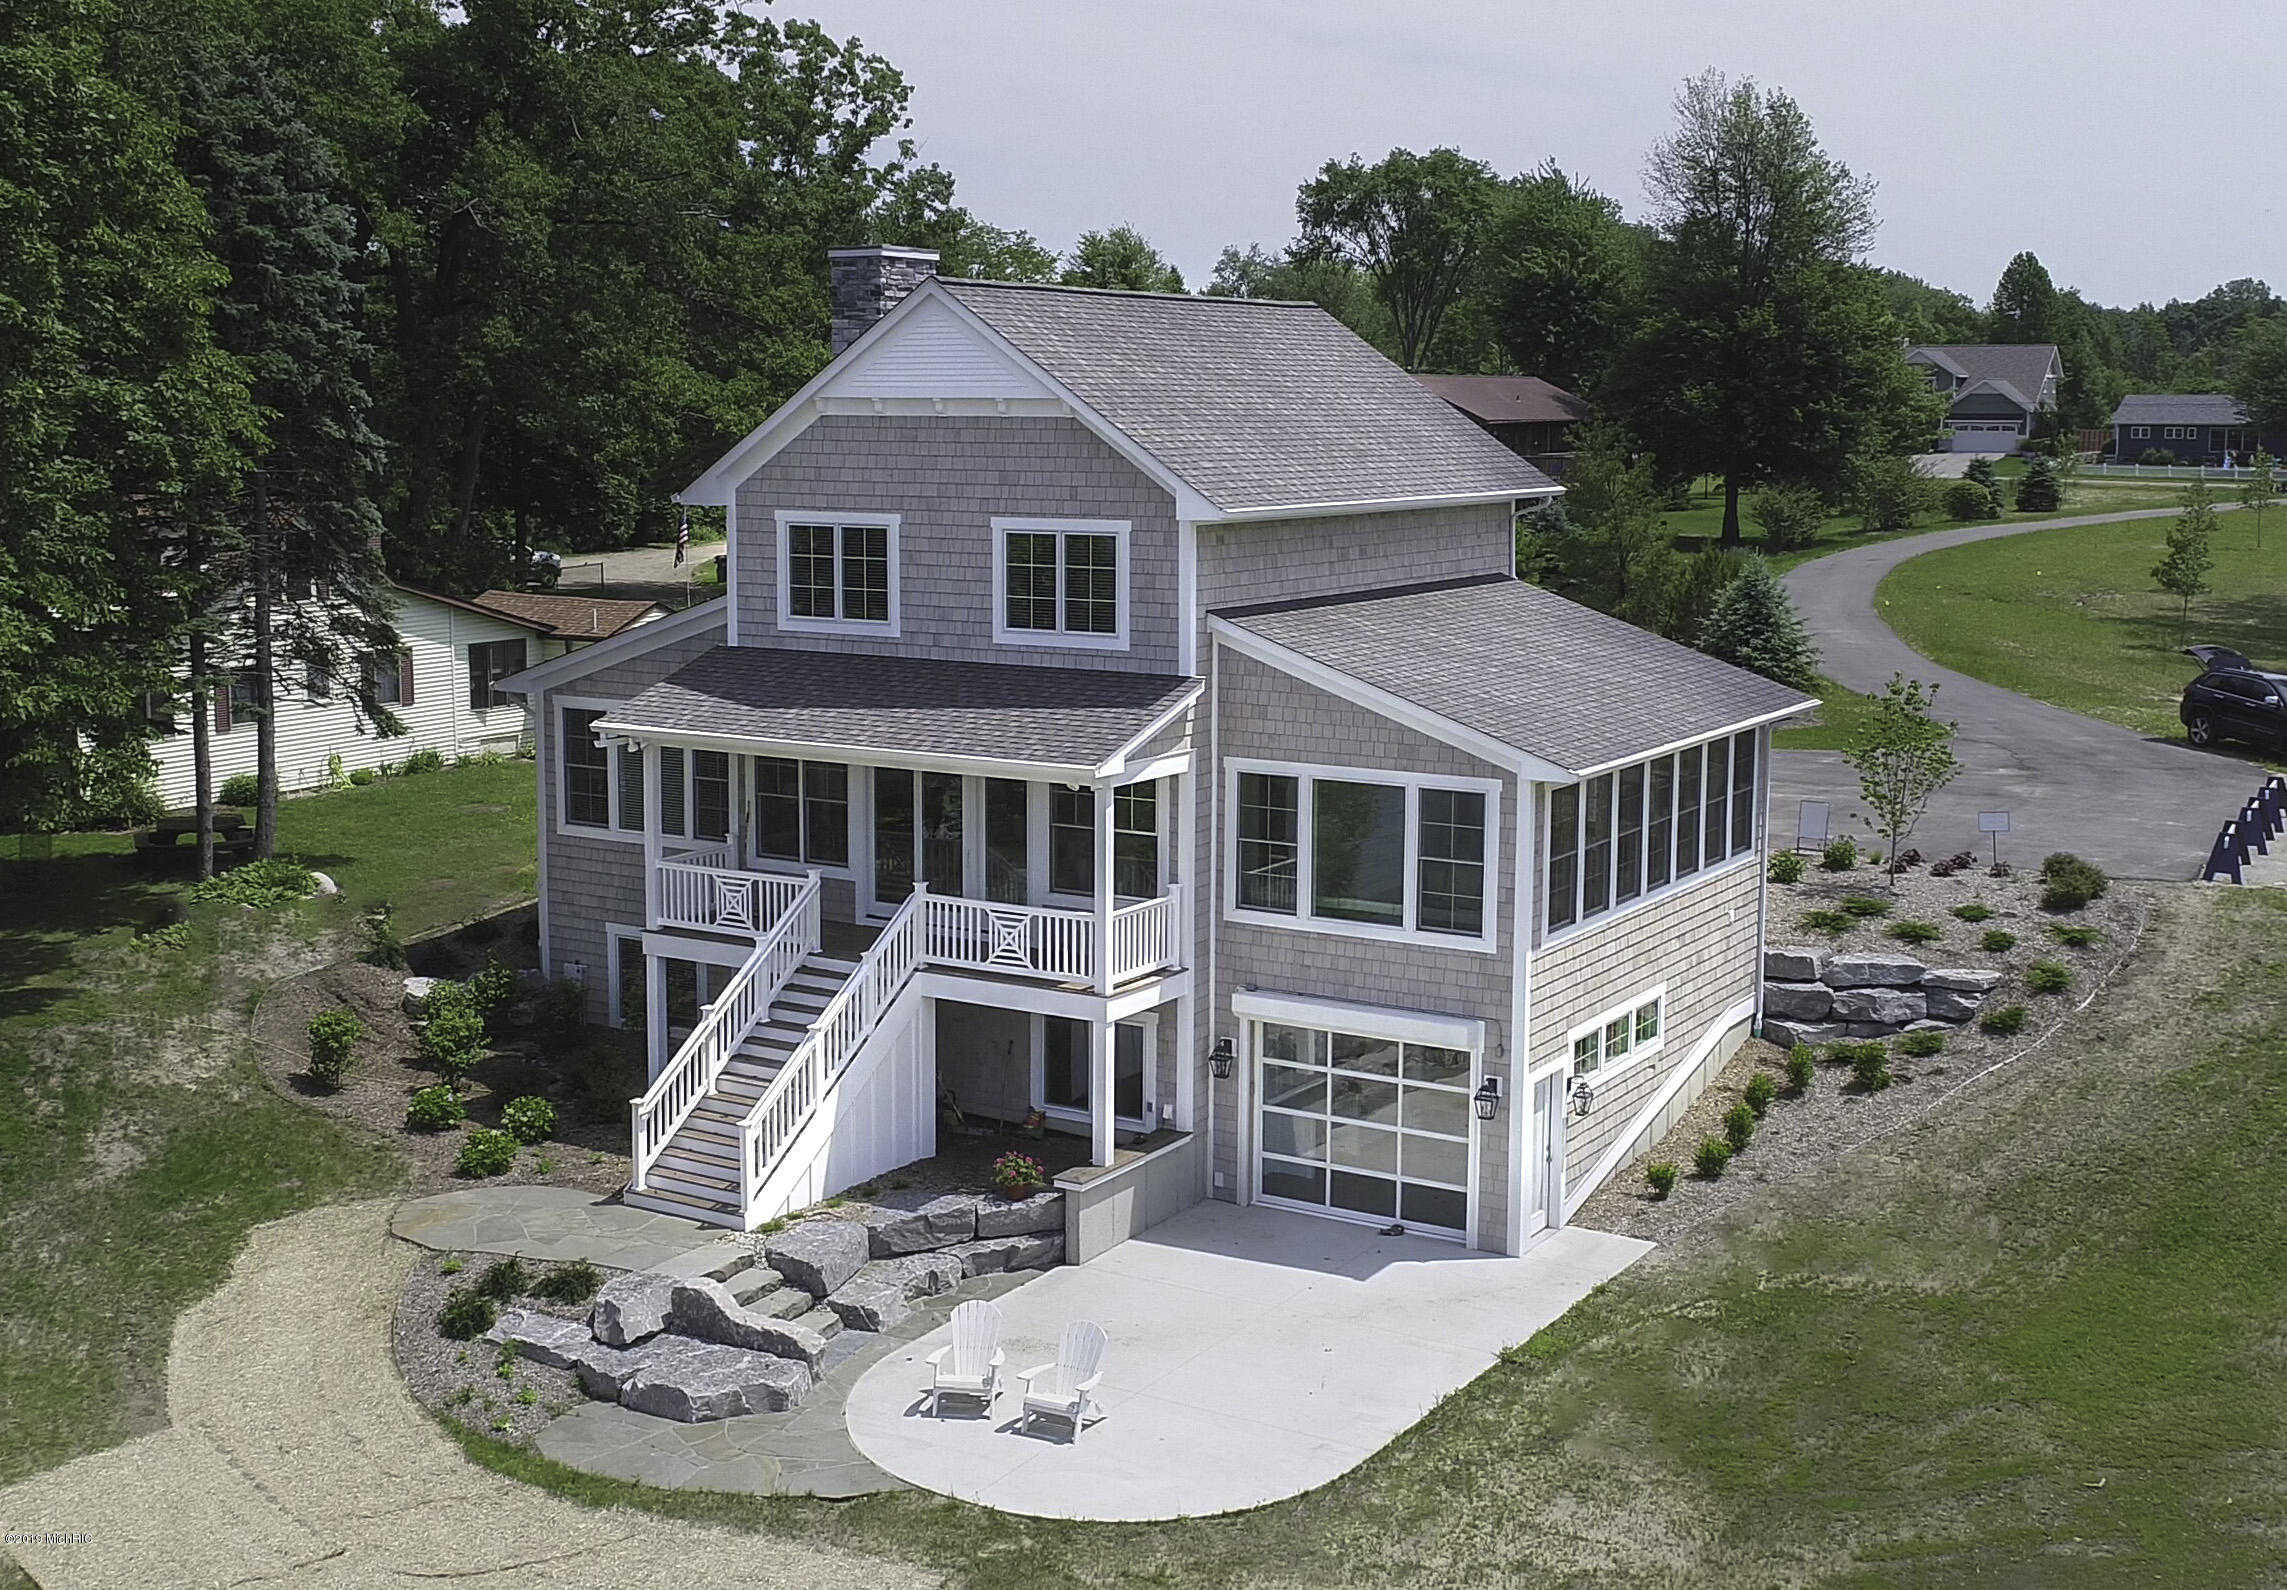 Search country house furniture south haven mi -  2 990 000 5br 4ba For Sale In South Haven